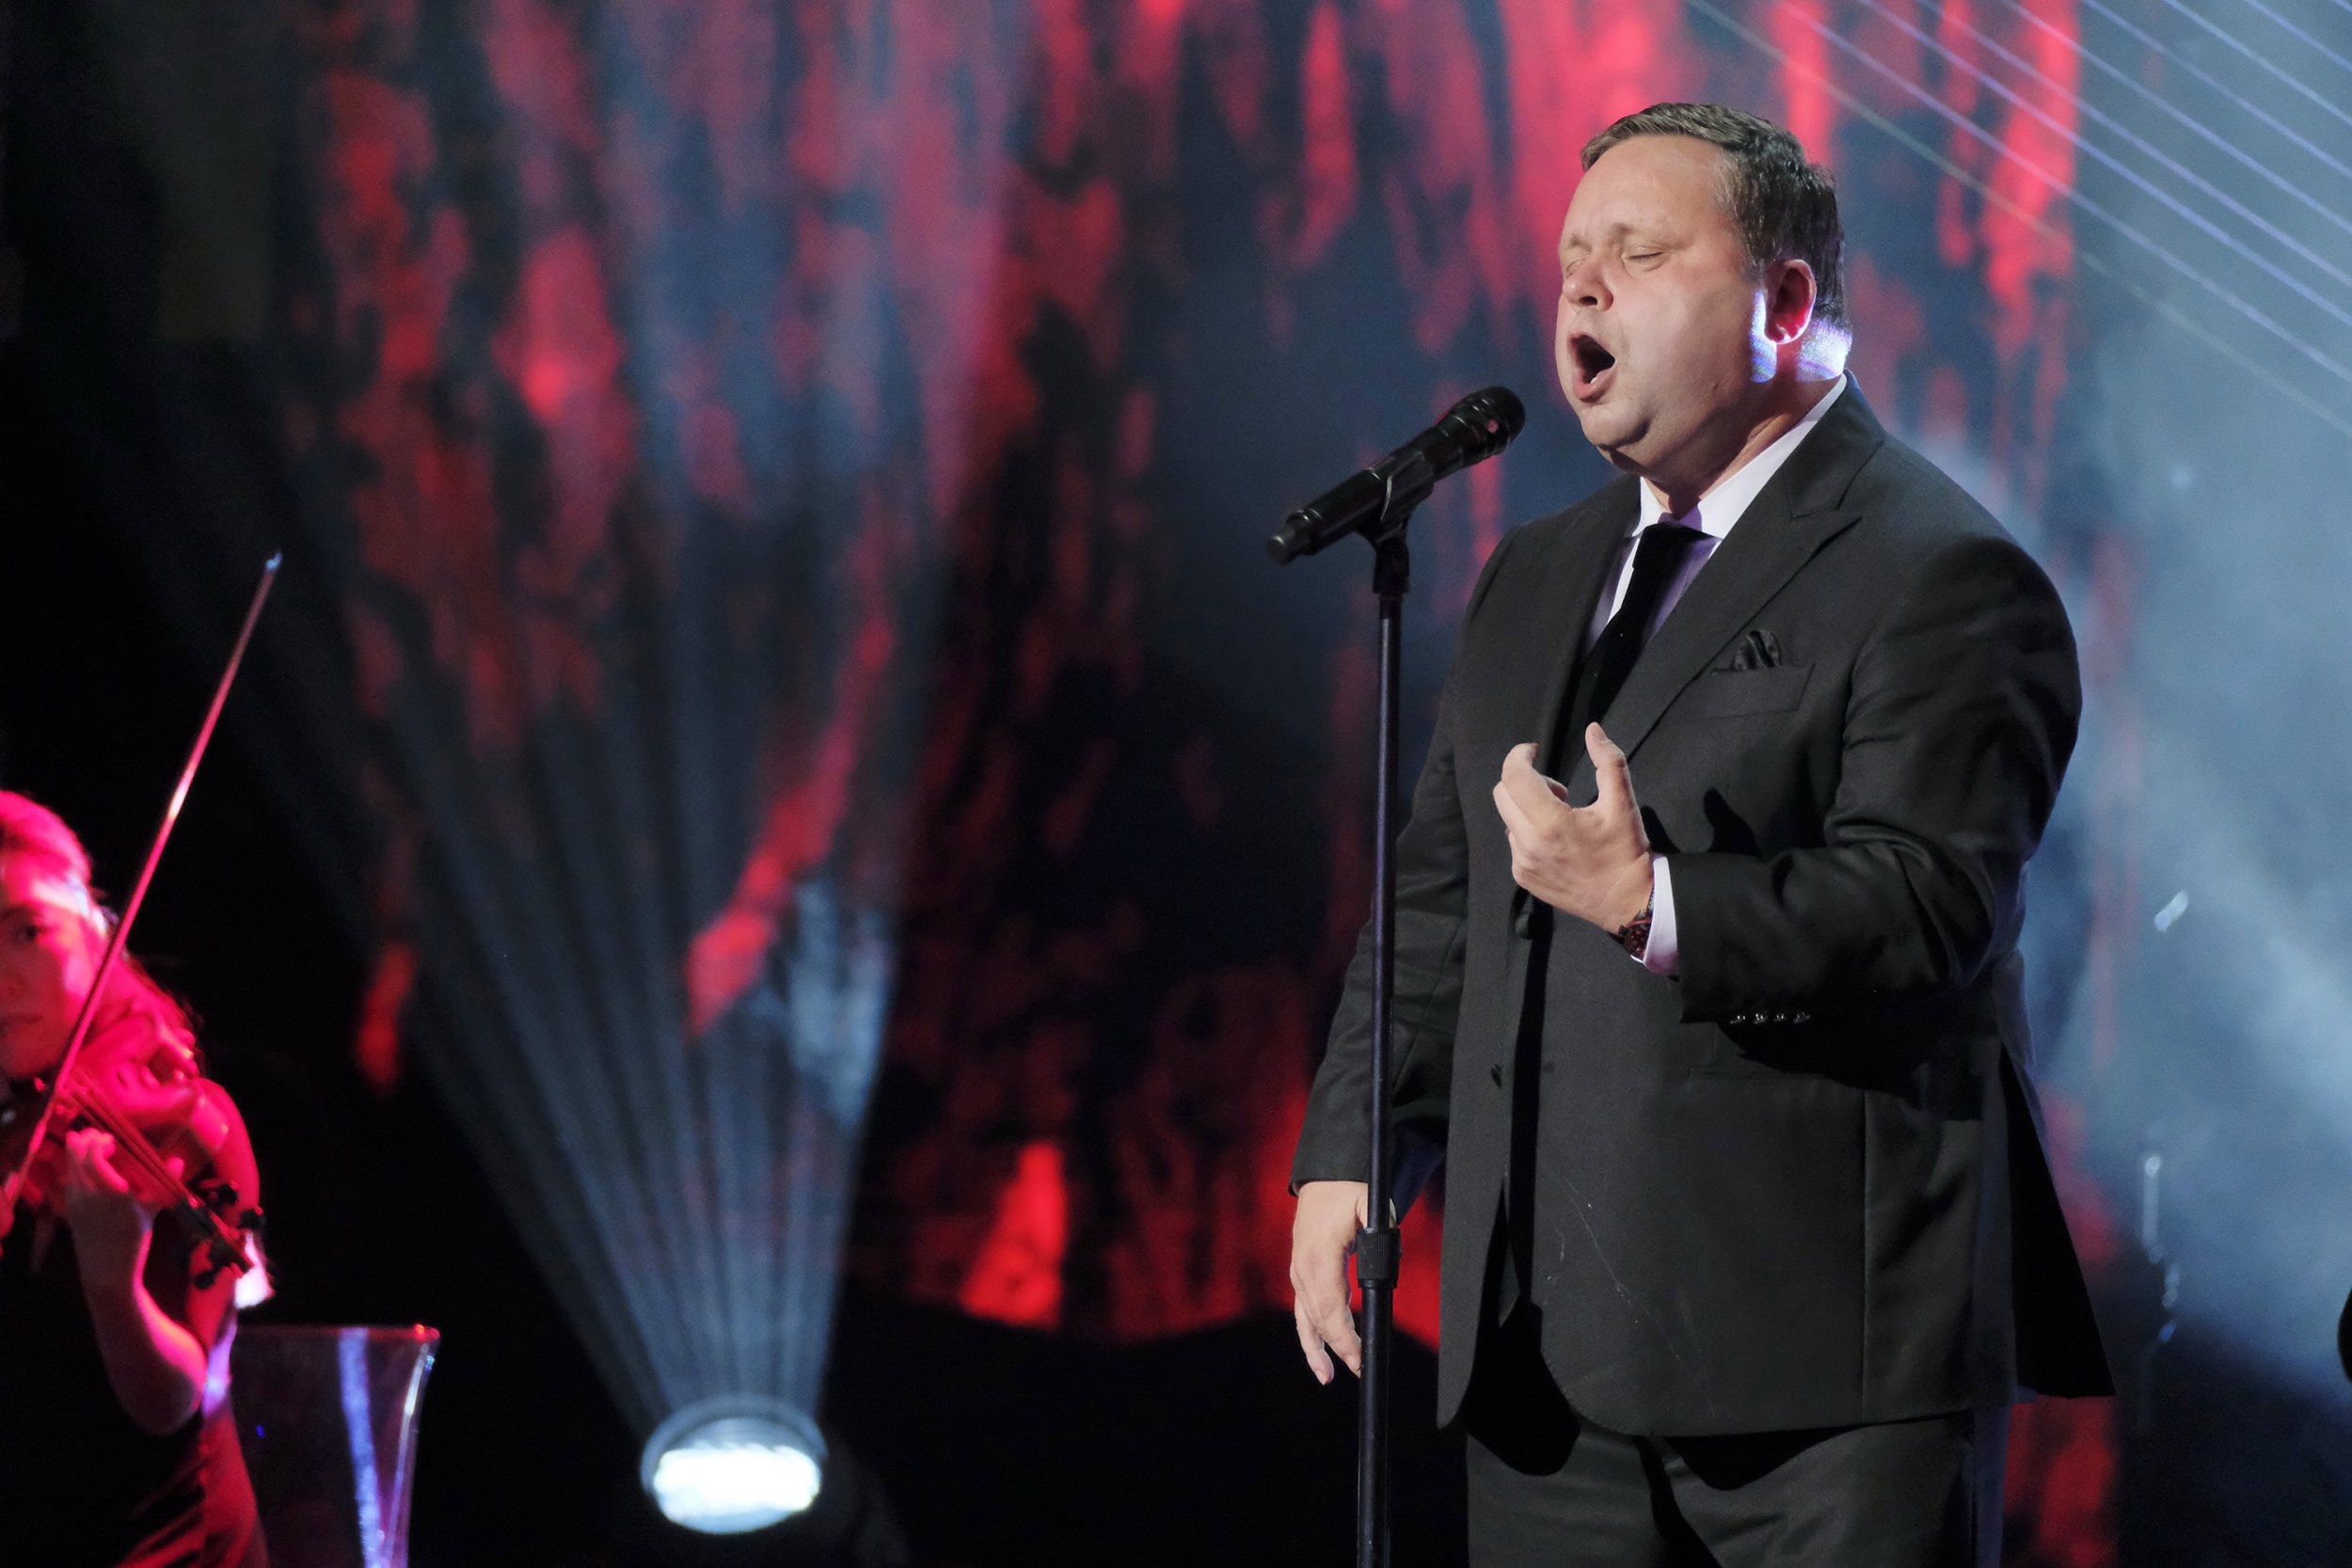 When did Paul Potts win Britain's Got Talent and what is his net worth?